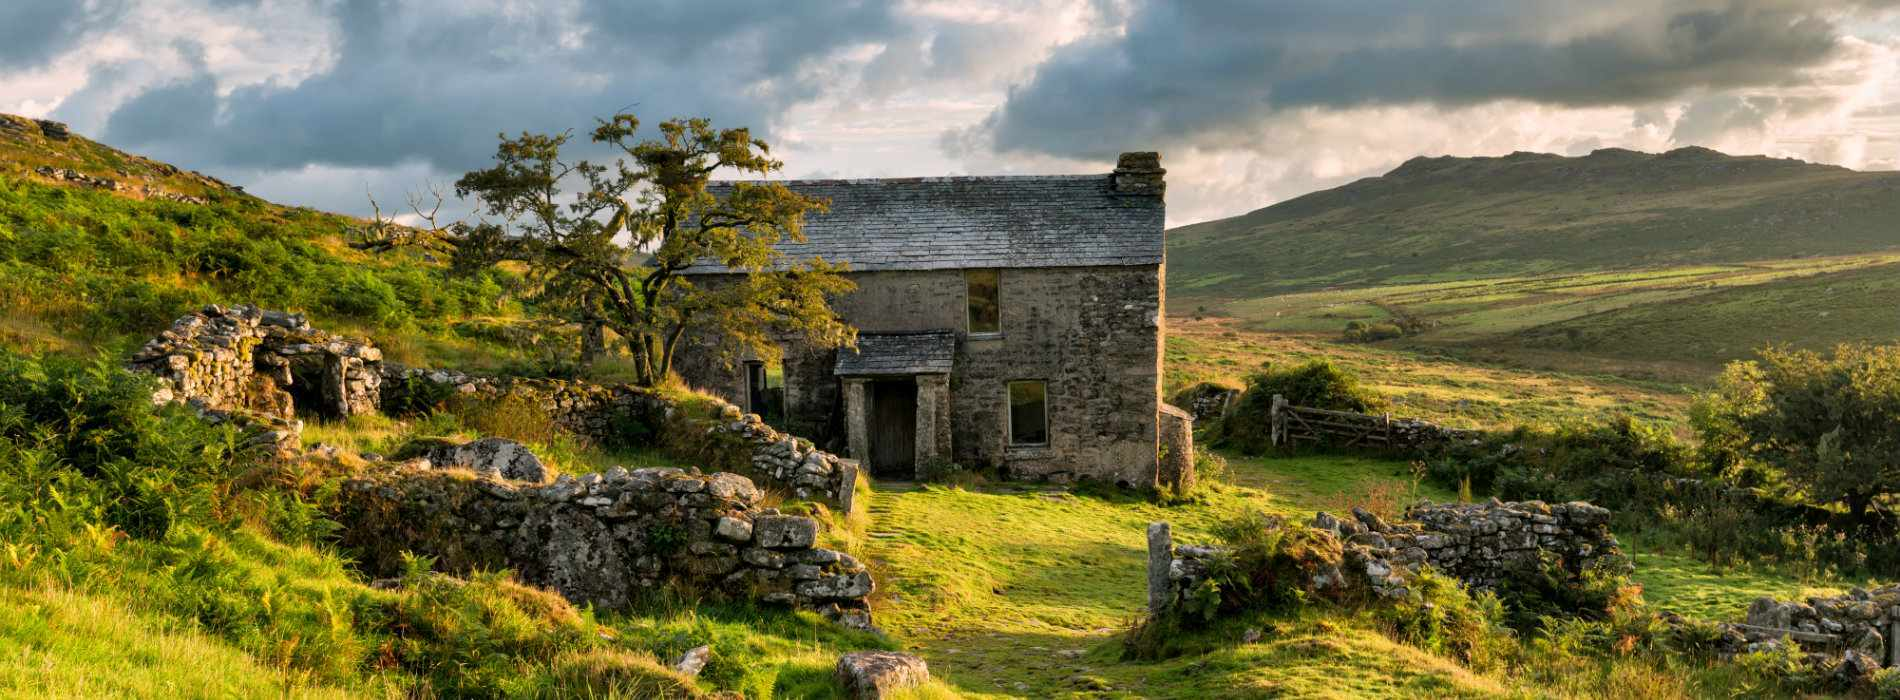 The 3 Sisters Age 92, 93 And 96 Are Living In A House On Bodmin Moor, One Night…